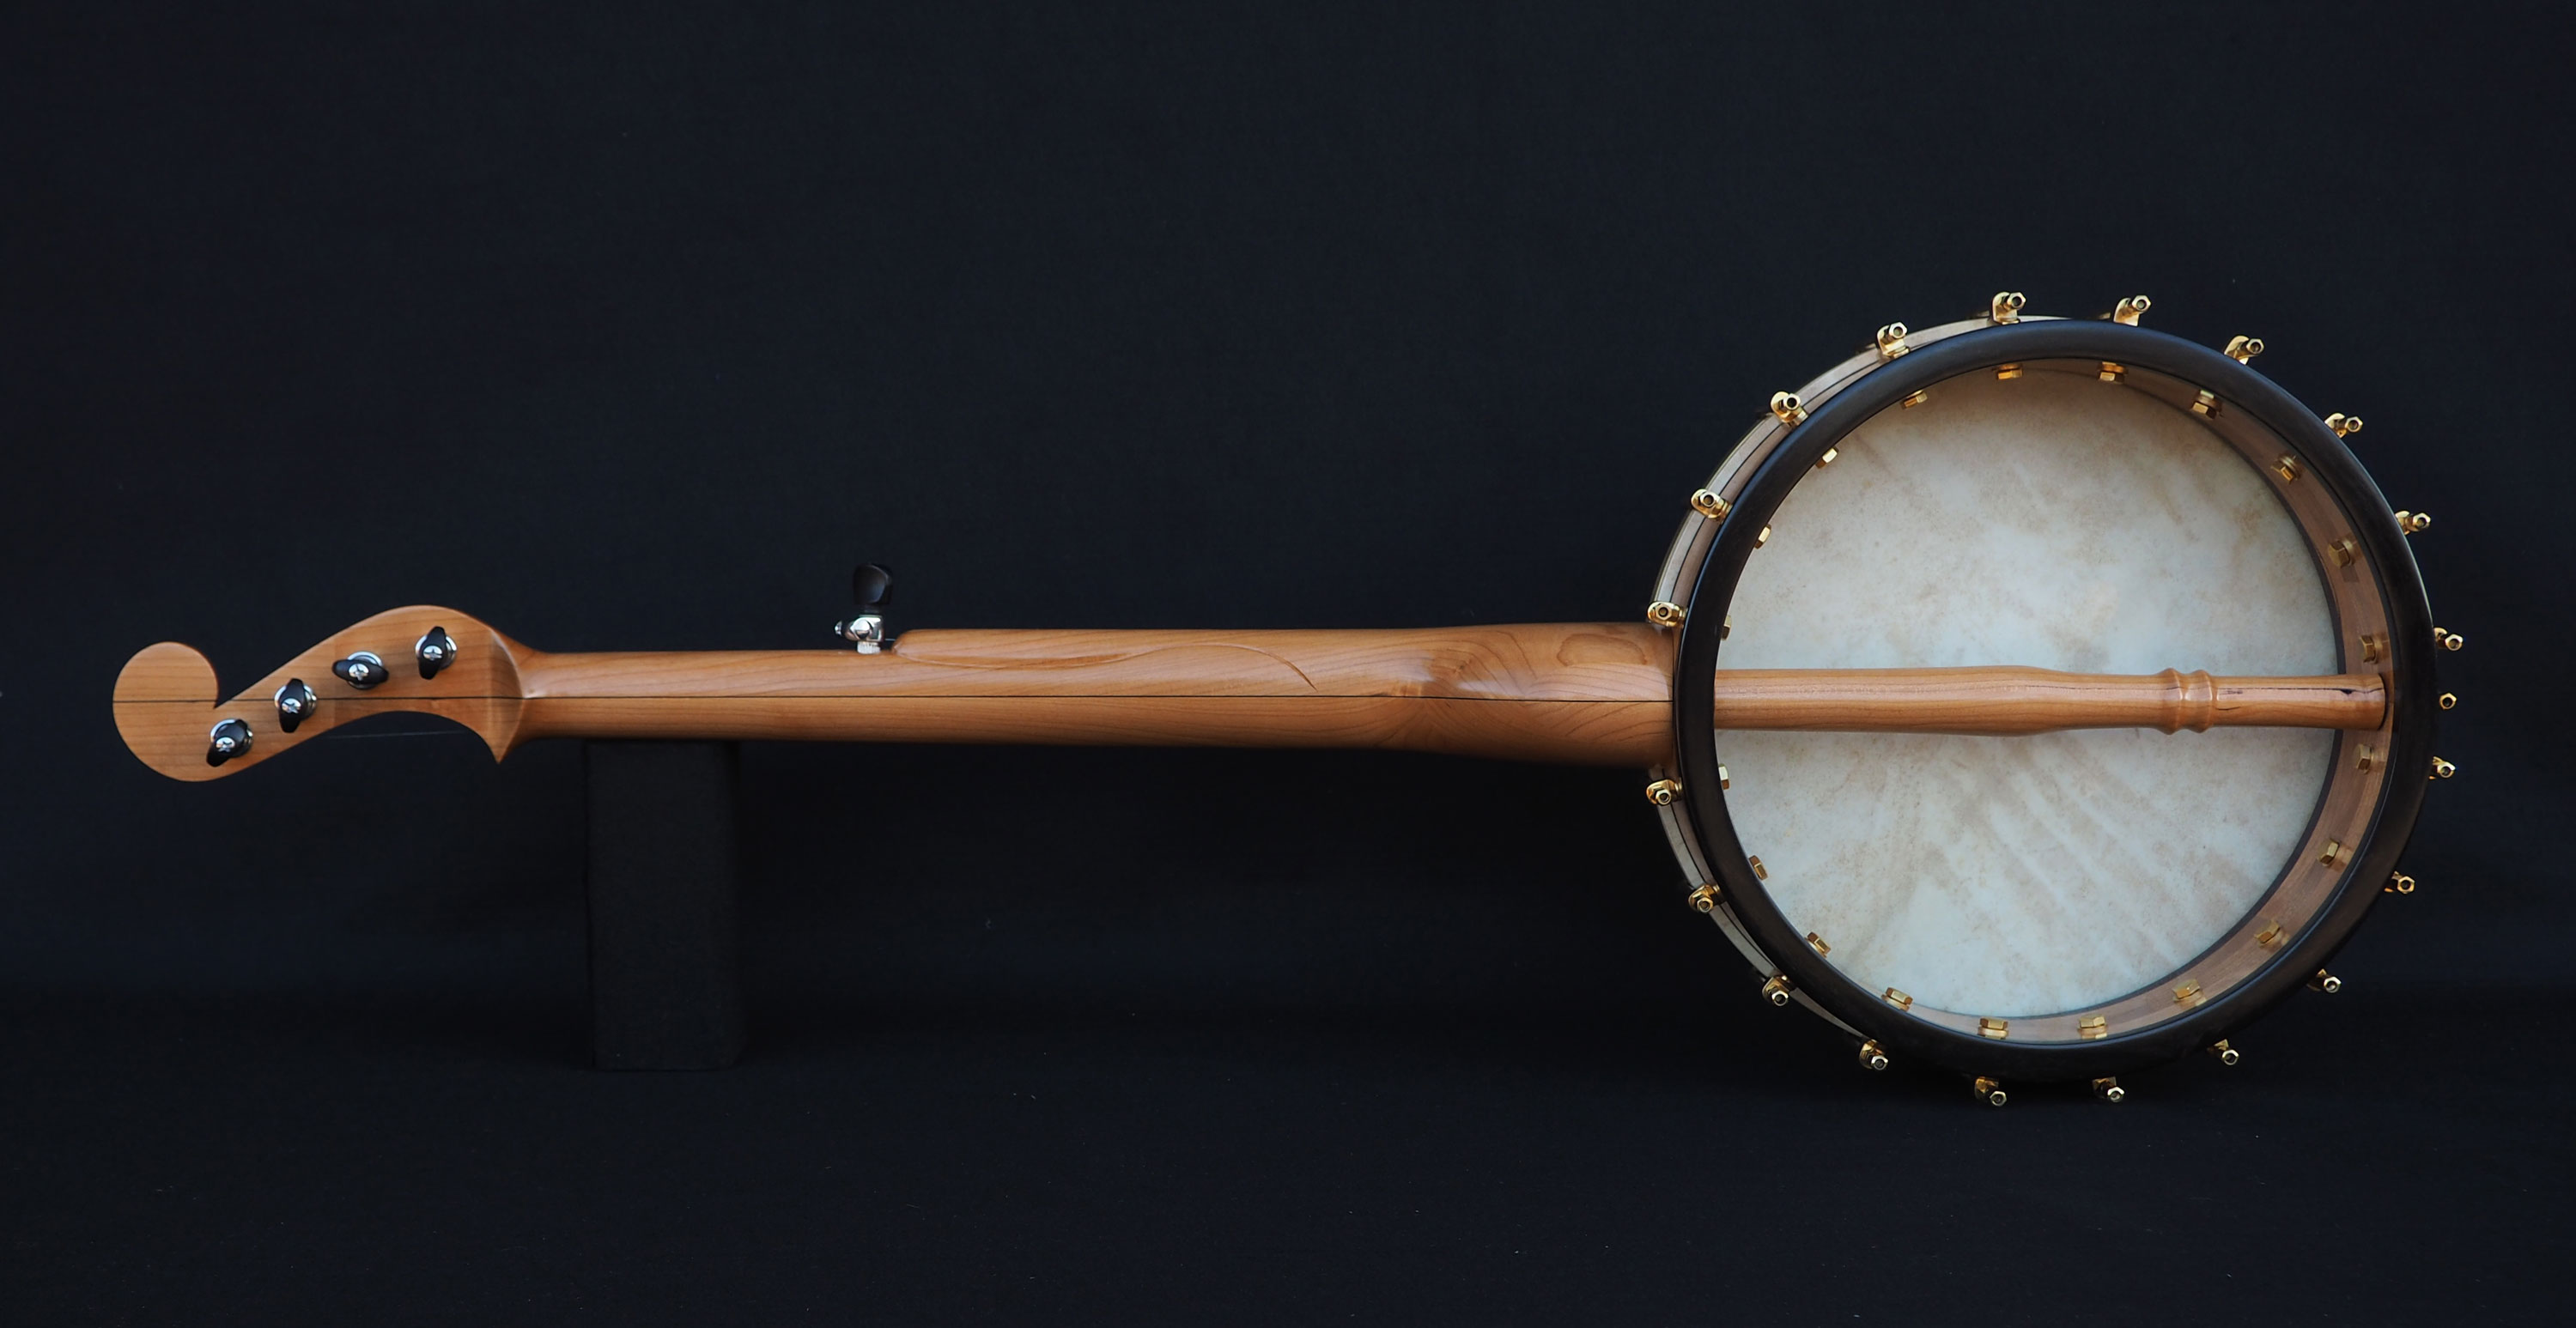 Cherry Banjo with Minstral Headstock